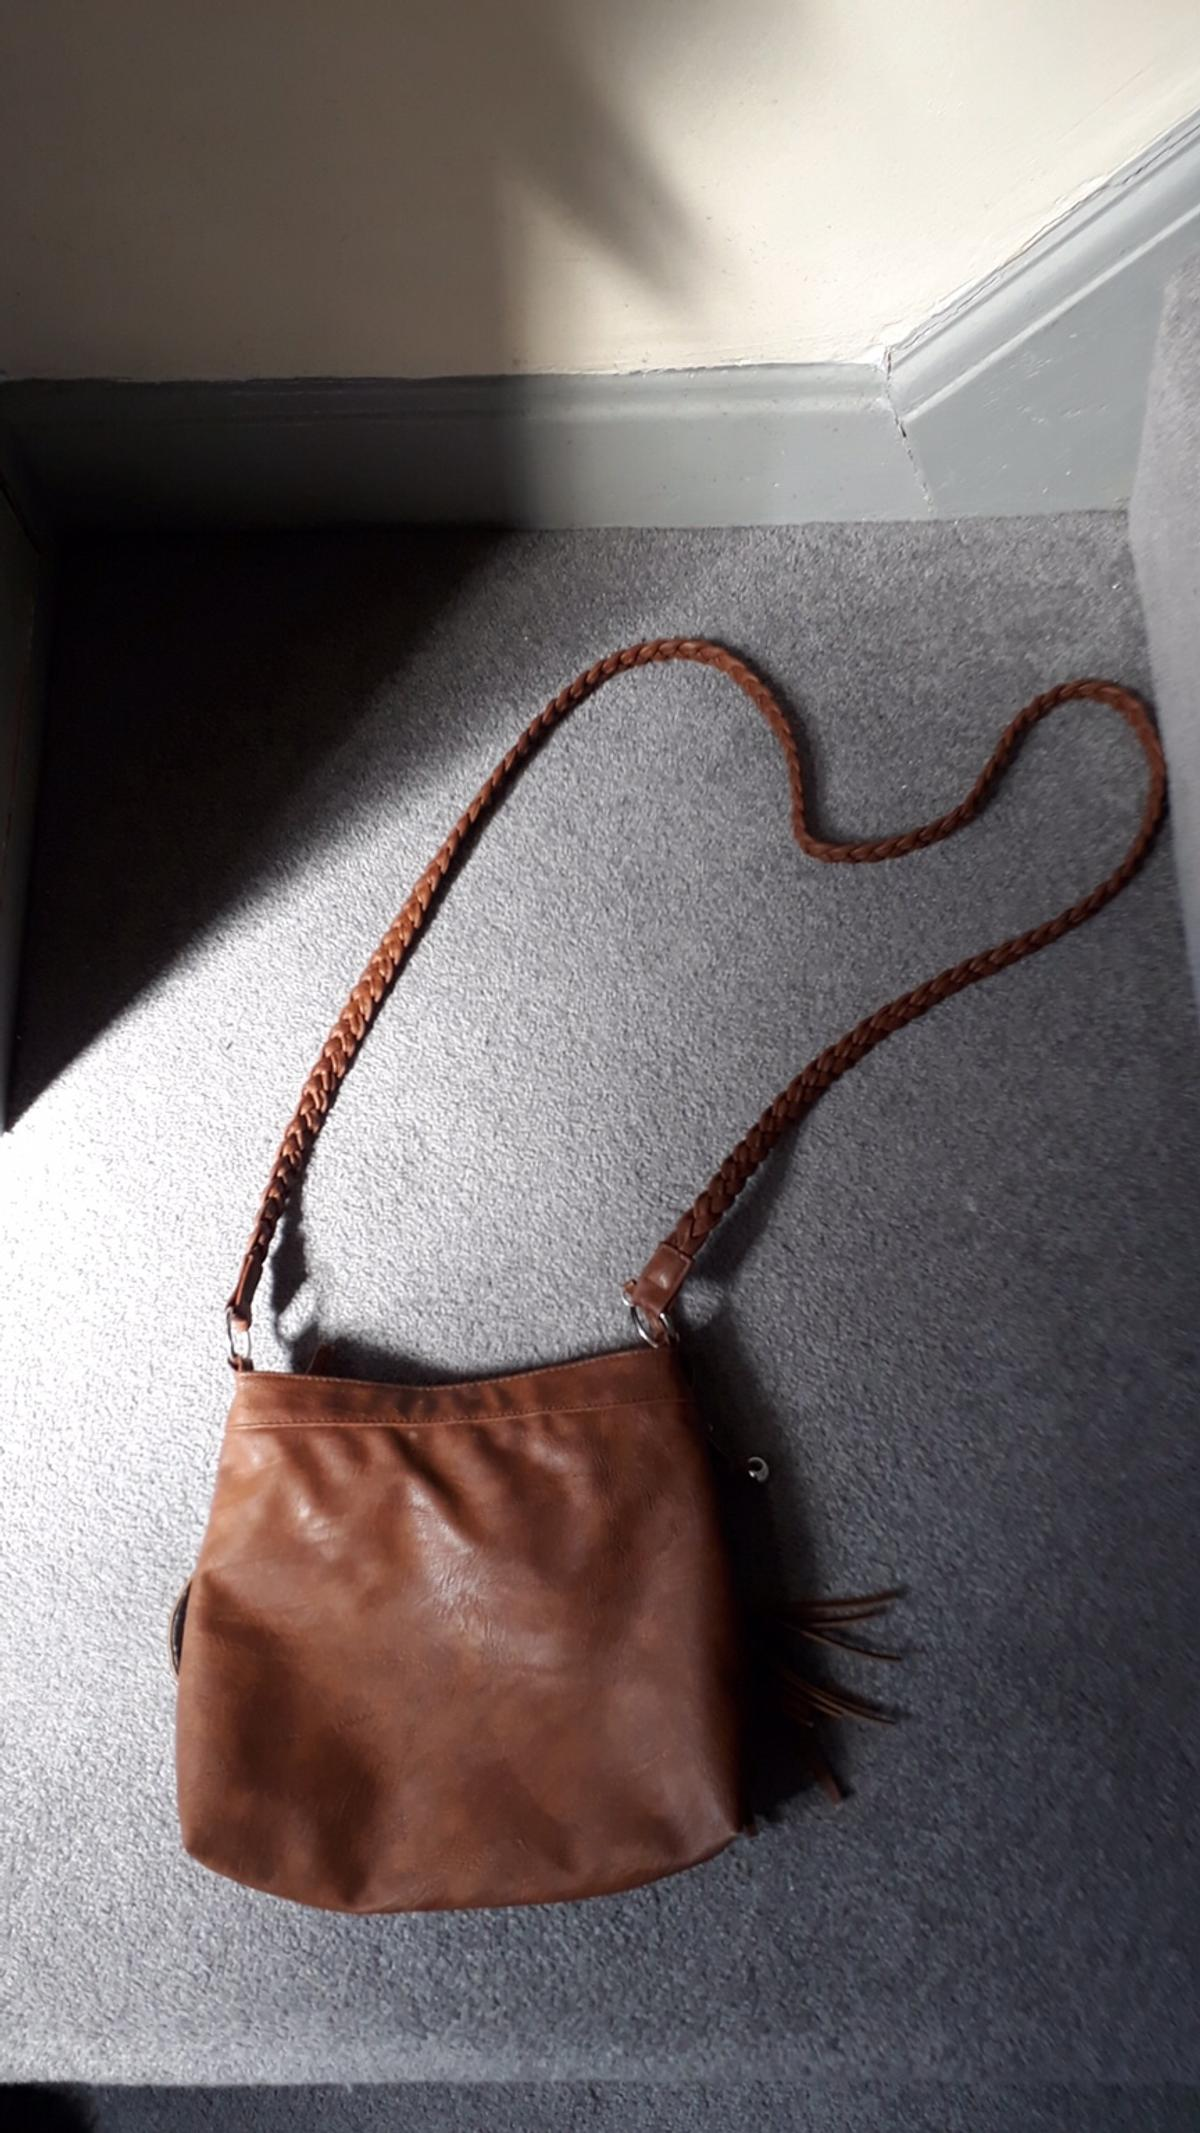 Brand new shoulder bag with long plated style strap and fringe design to the front. Tan in colour Closes by Zip Inside zipped pocket And mobile pocket Size approx 10 x 9 inches Due To Social Distancing If payment can be made by online transfer, or the correct money left in a envelope and posted through the letter box at the time of collection, I will leave in the garden in a plastic bag, so you can safely collect without any interaction needed. Will post for extra